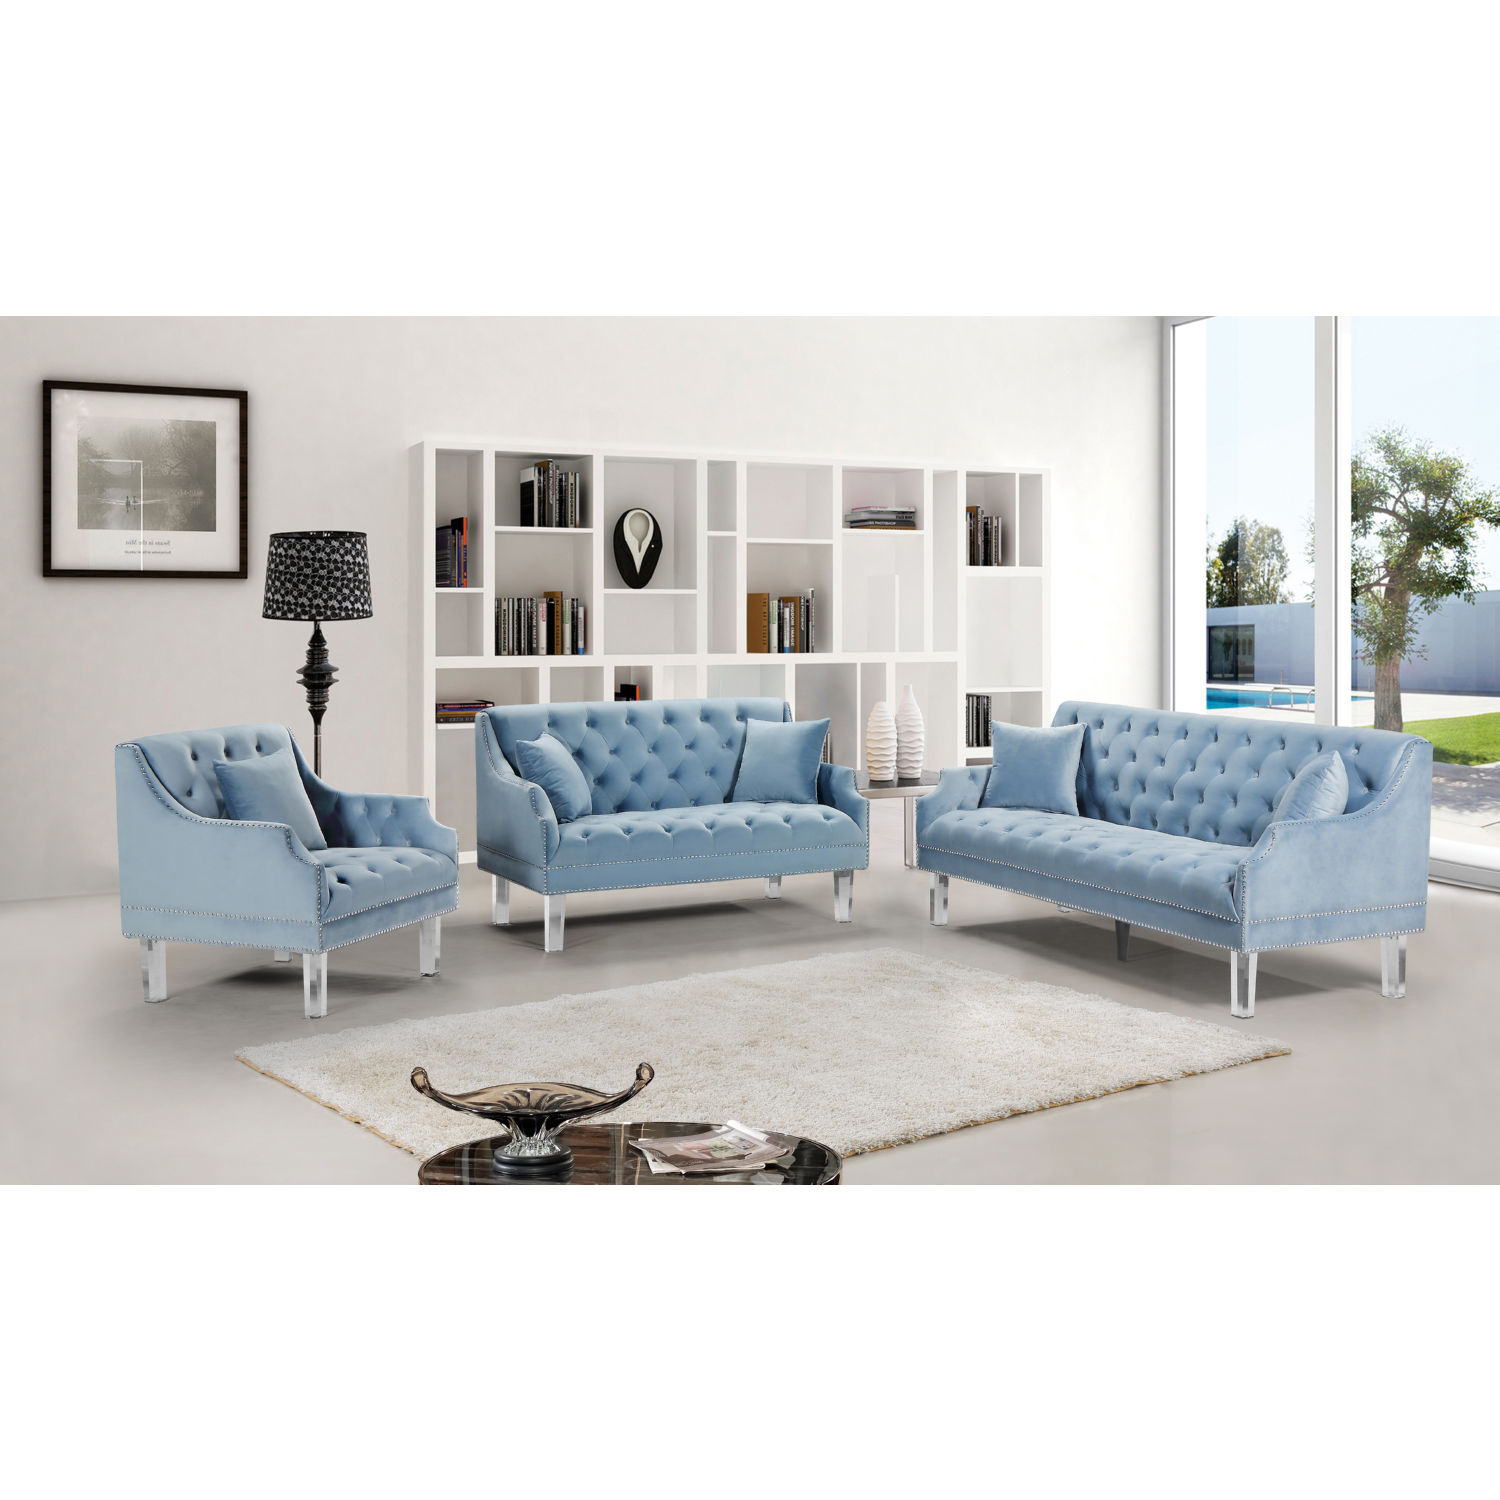 Roxy Accent Chair In Tufted Sky Blue Velvet On Acrylic Legs By Meridian Furniture